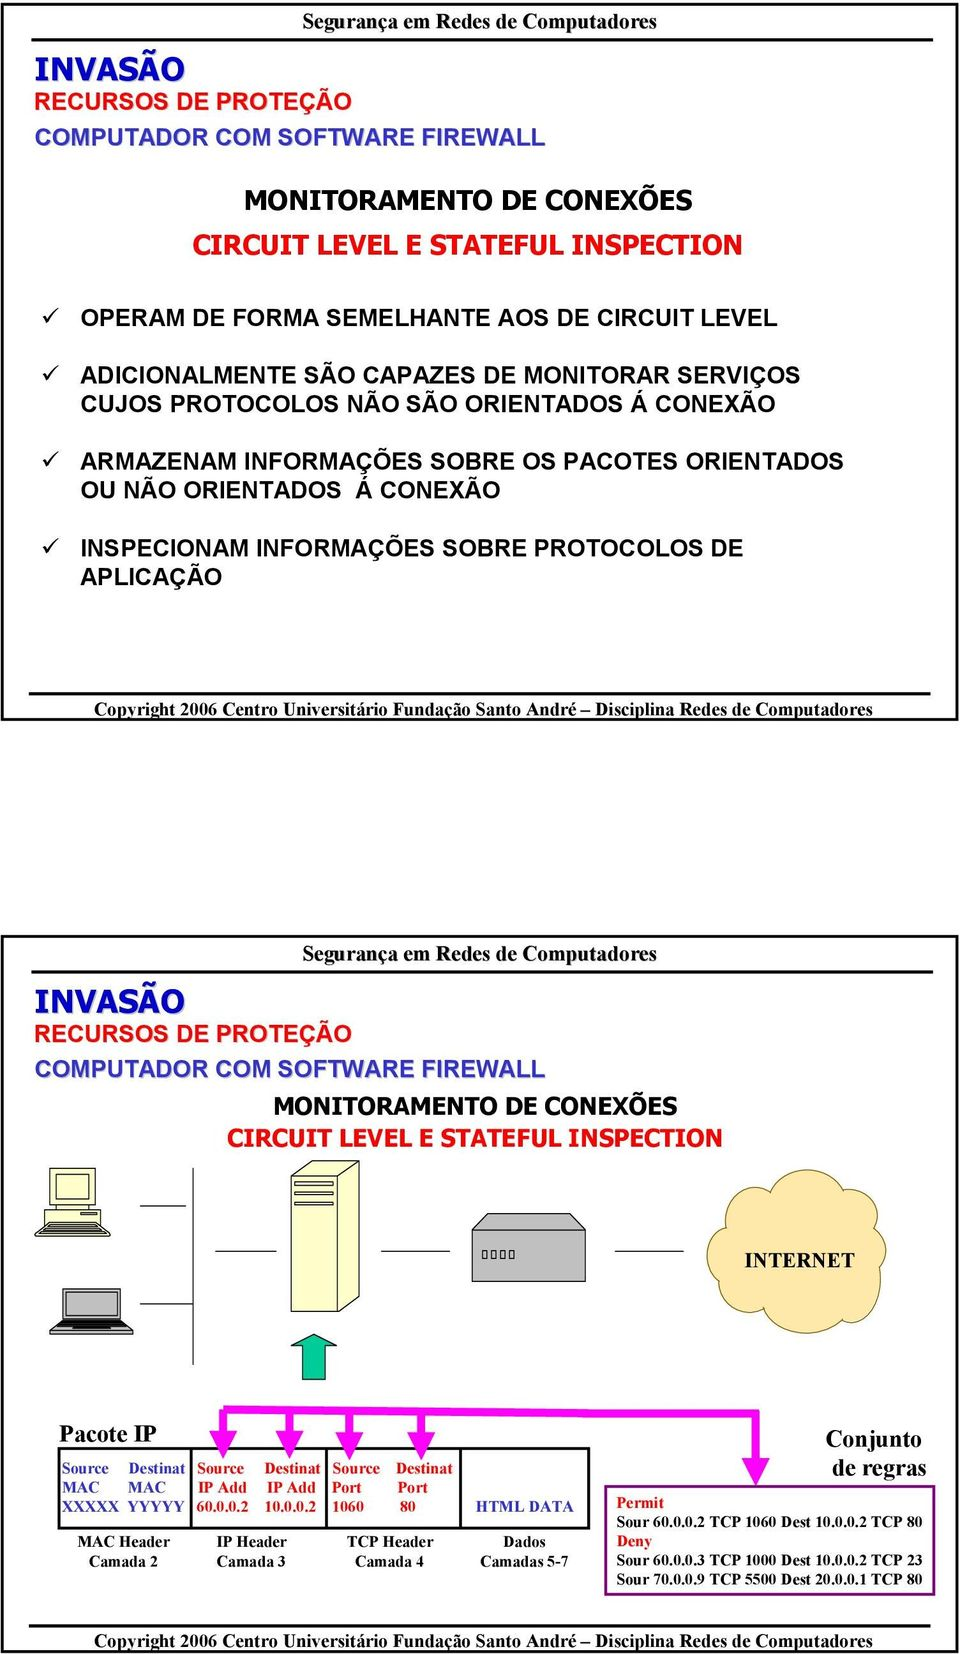 COM SOFTWARE FIREWALL MONITORAMENTO DE CONEXÕES CIRCUIT LEVEL E STATEFUL INSPECTION INTERNET Pacote IP Source Destinat Source Destinat Source Destinat MAC MAC IP Add IP Add Port Port XXXXX YYYYY 60.